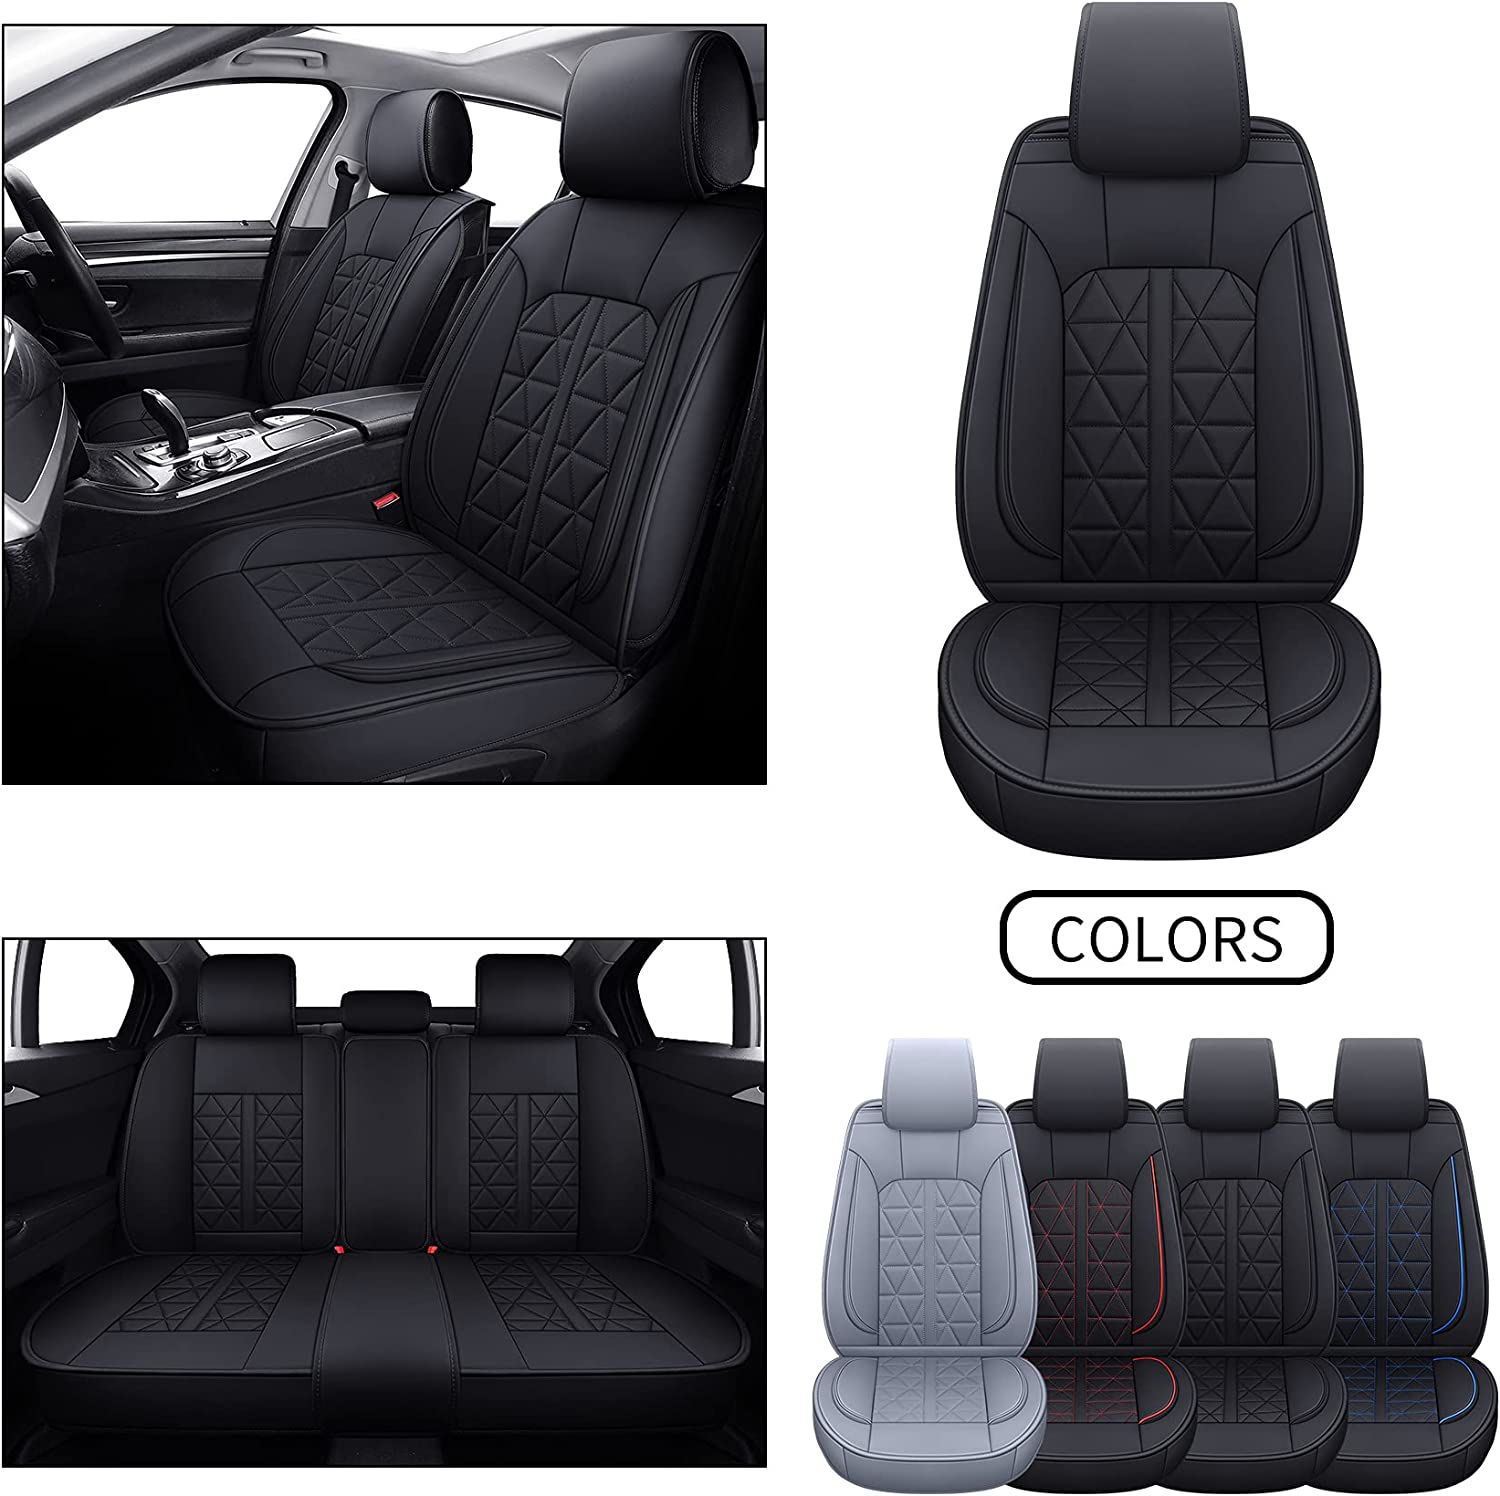 Oakland Mall INCH OFFicial EMPIRE Seat Cover 5 Seats Full Fit Most Universal for S Set